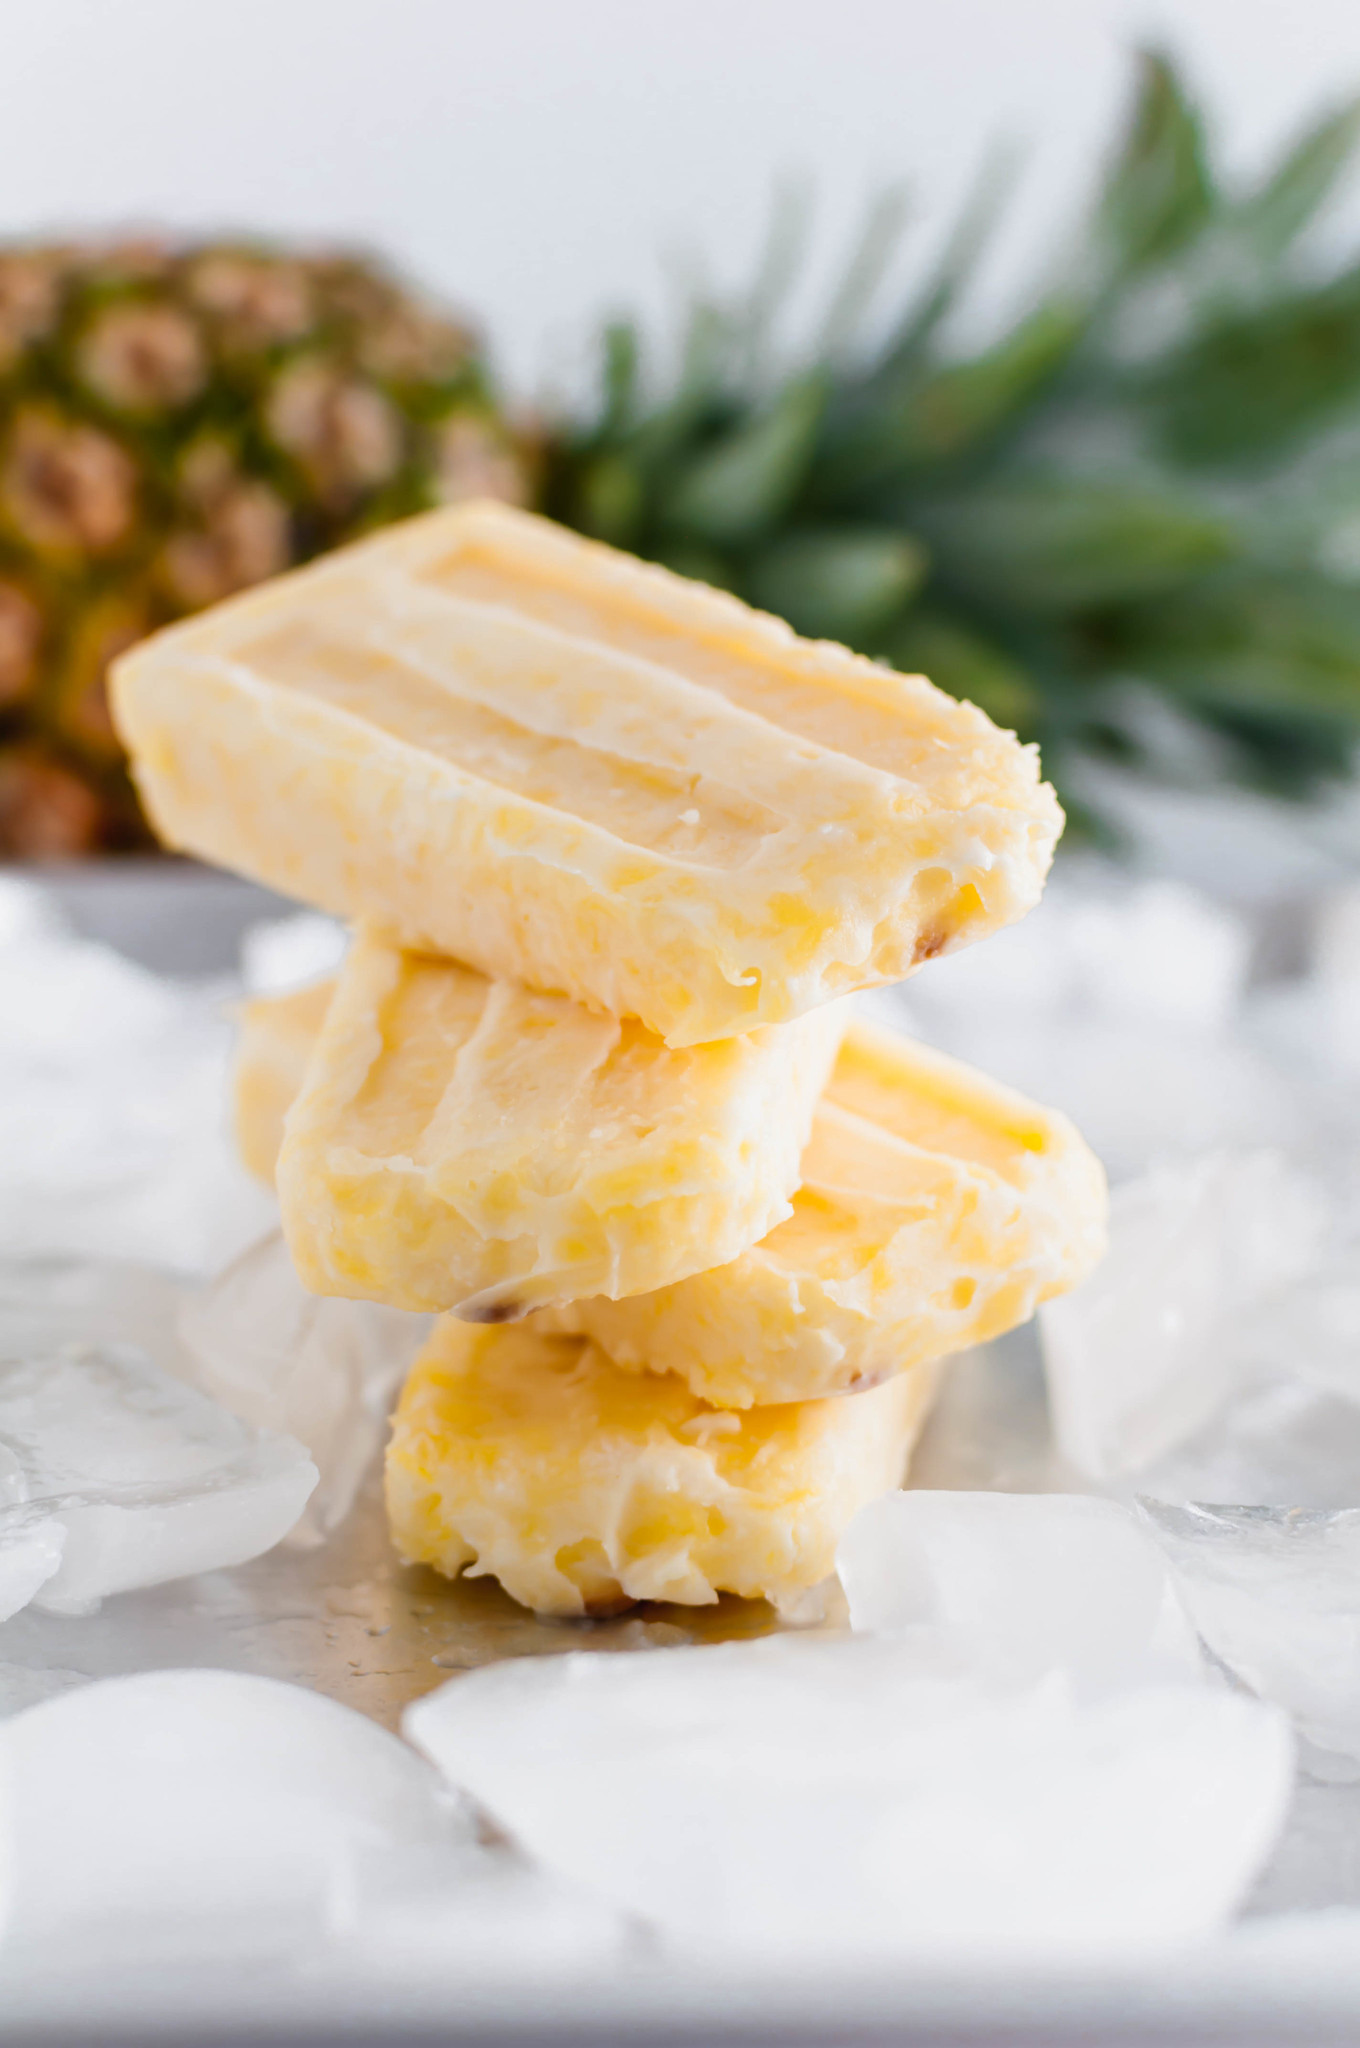 These Pina Colada Popsicles will be the treat of summer. Creamy coconut and sweet pineapple make a simple, delicious dessert that tastes just like the classic drink (without the booze).